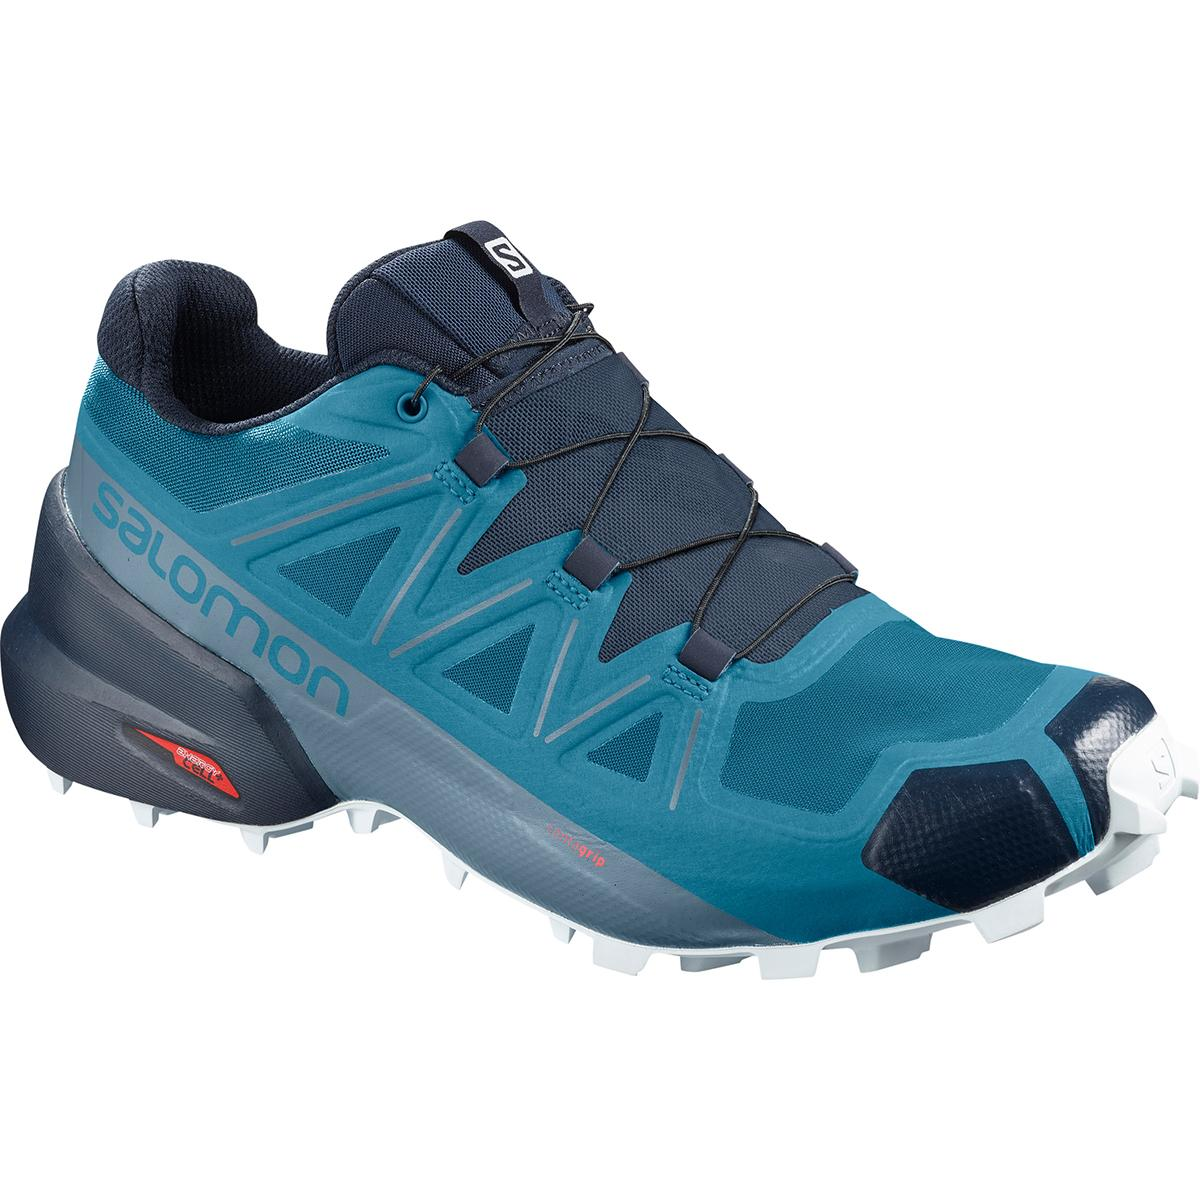 Salomon men's Speedcross 5 Trail Run Shoe in Fjord Blue and Navy Blazer main view